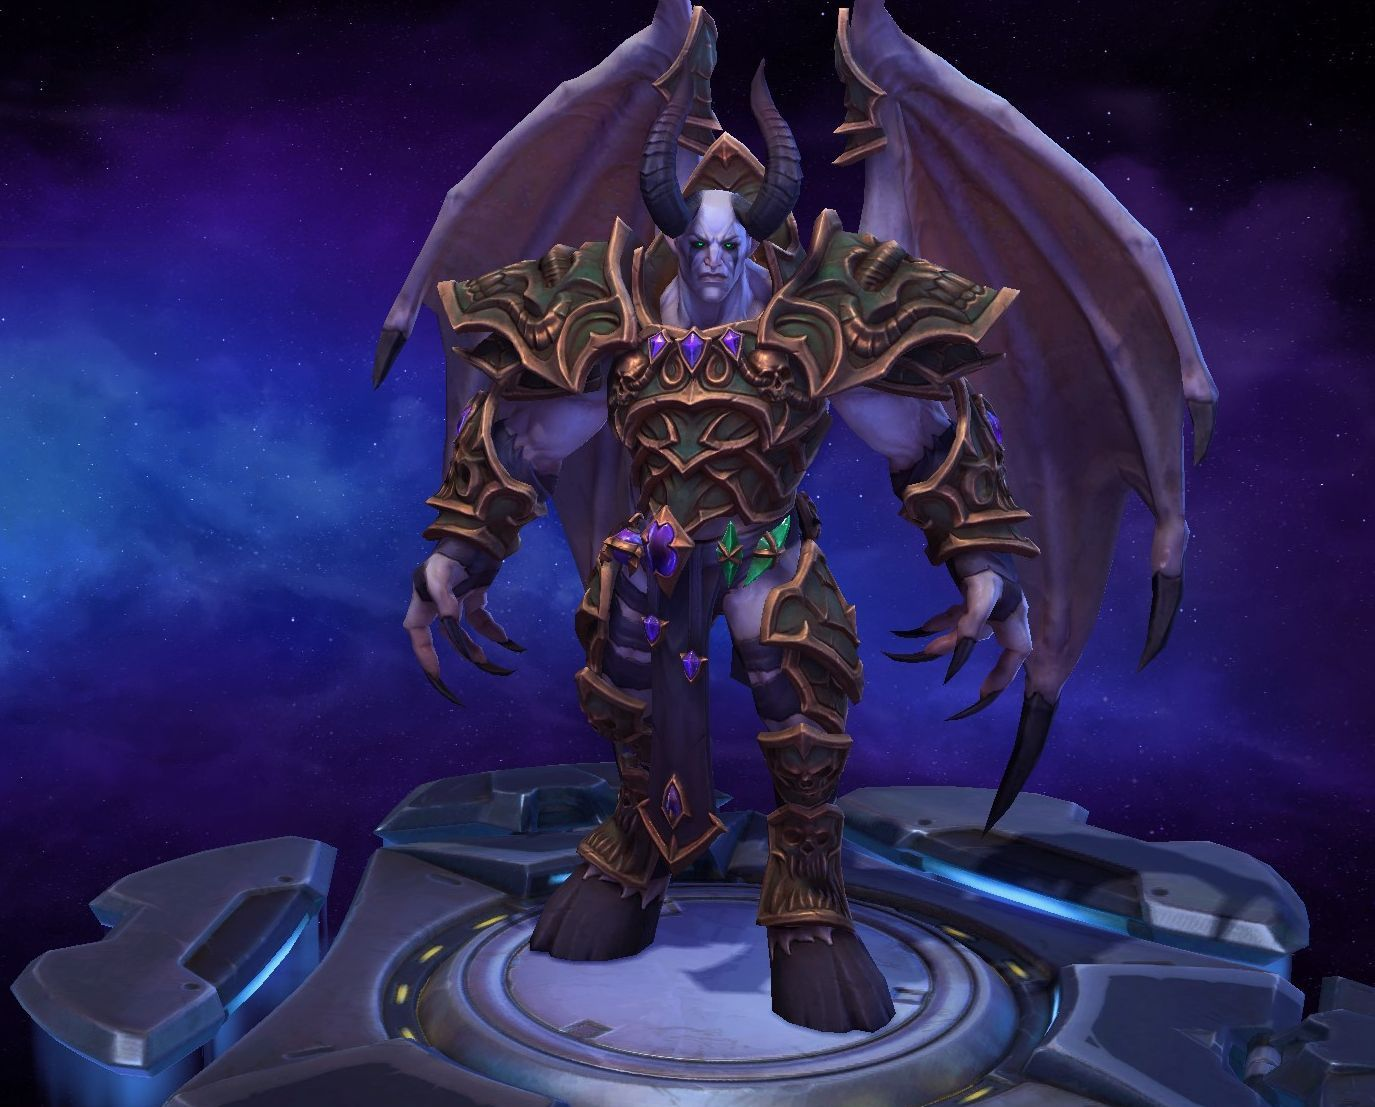 Mal Ganis In Heroes Of Storm Lycanthrope World Of Warcraft Hero Knoll king on the loose hots: mal ganis in heroes of storm